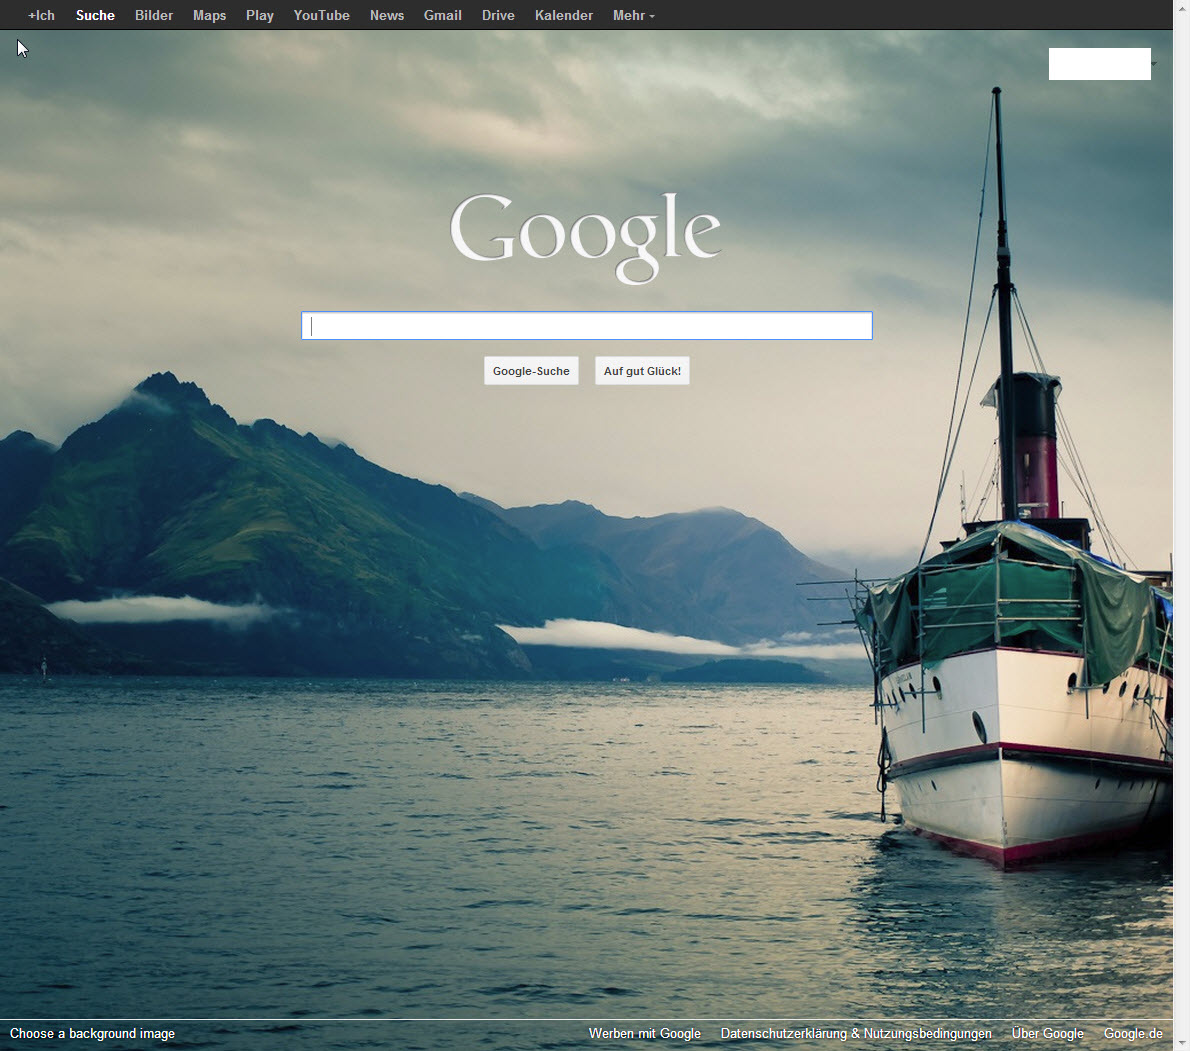 How To Put Wallpaper On Google Homepage